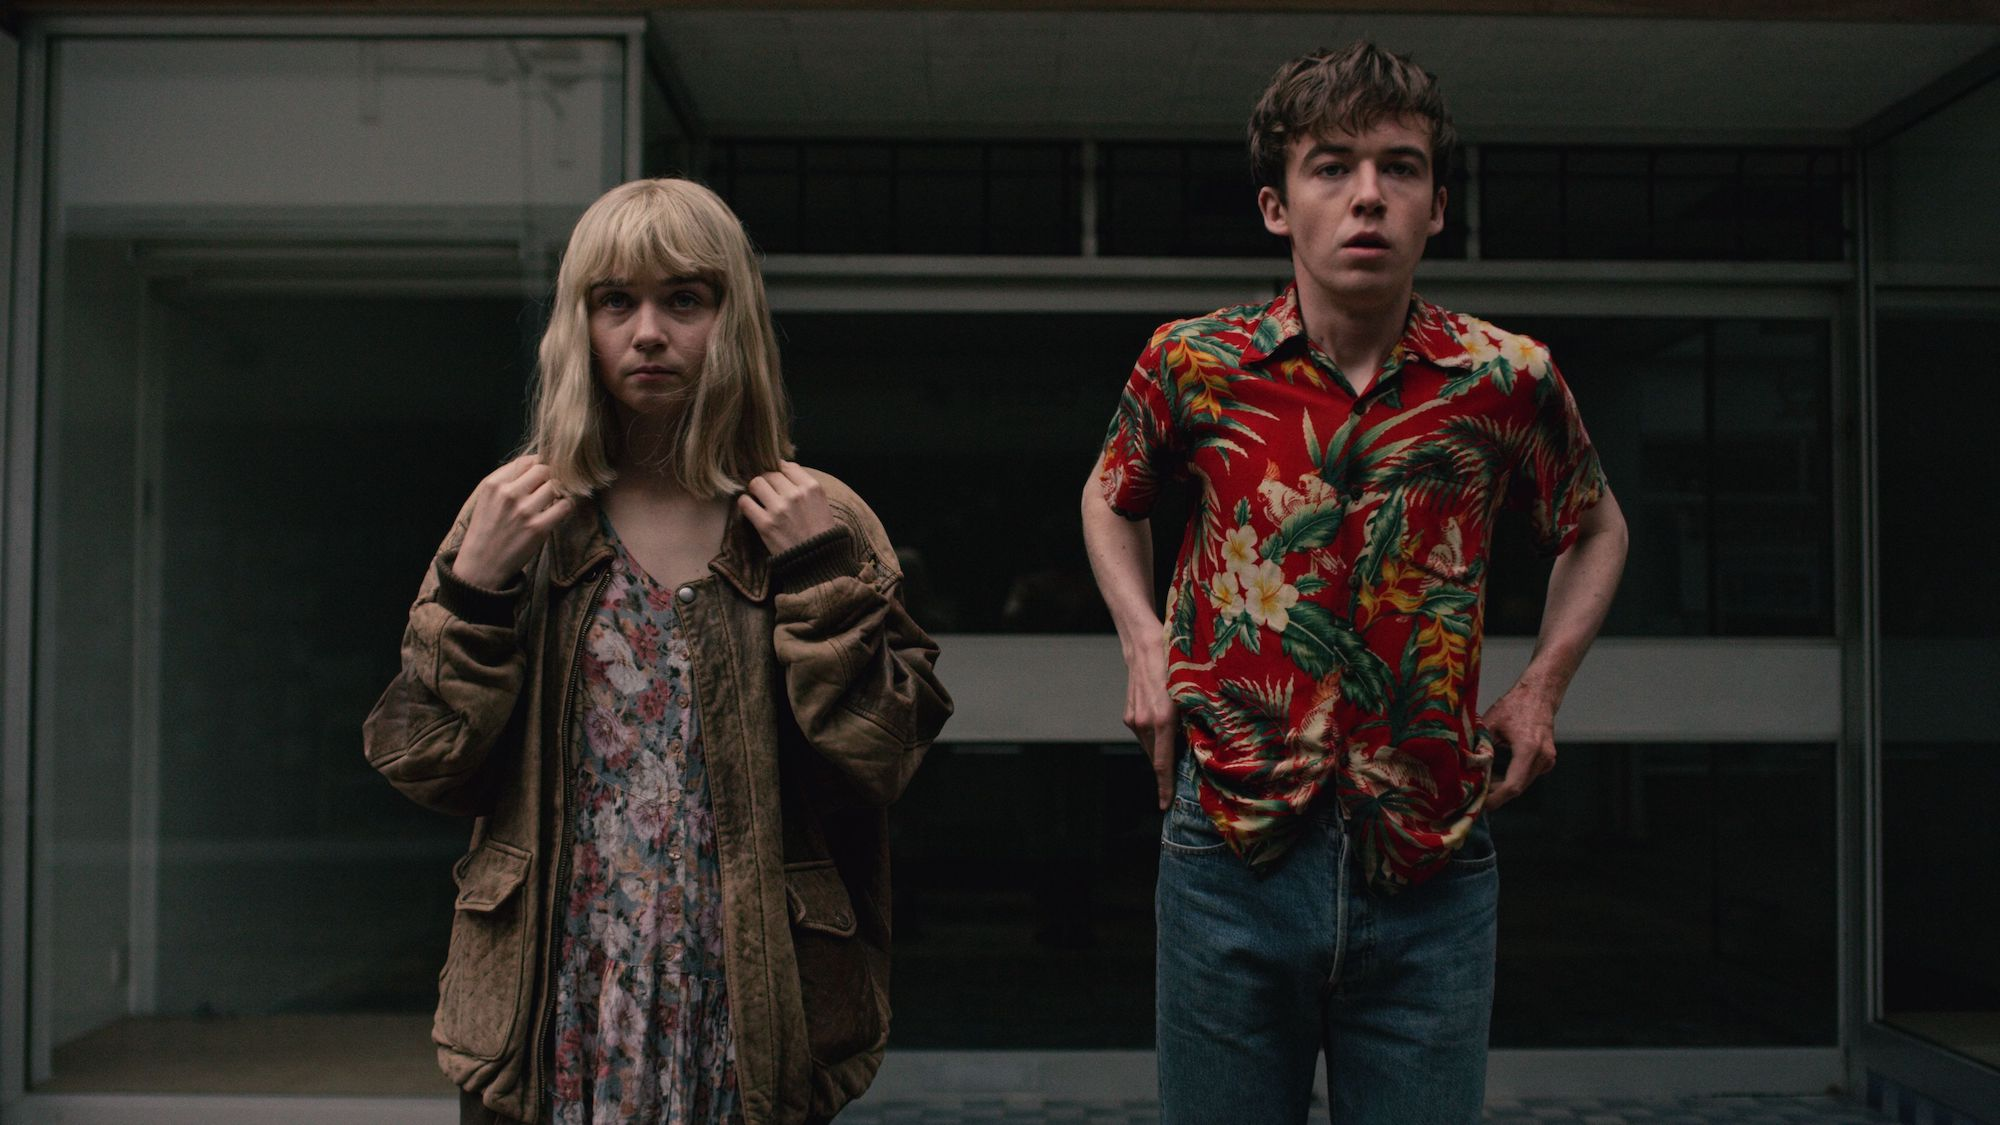 The End of the F***ing World Season 2